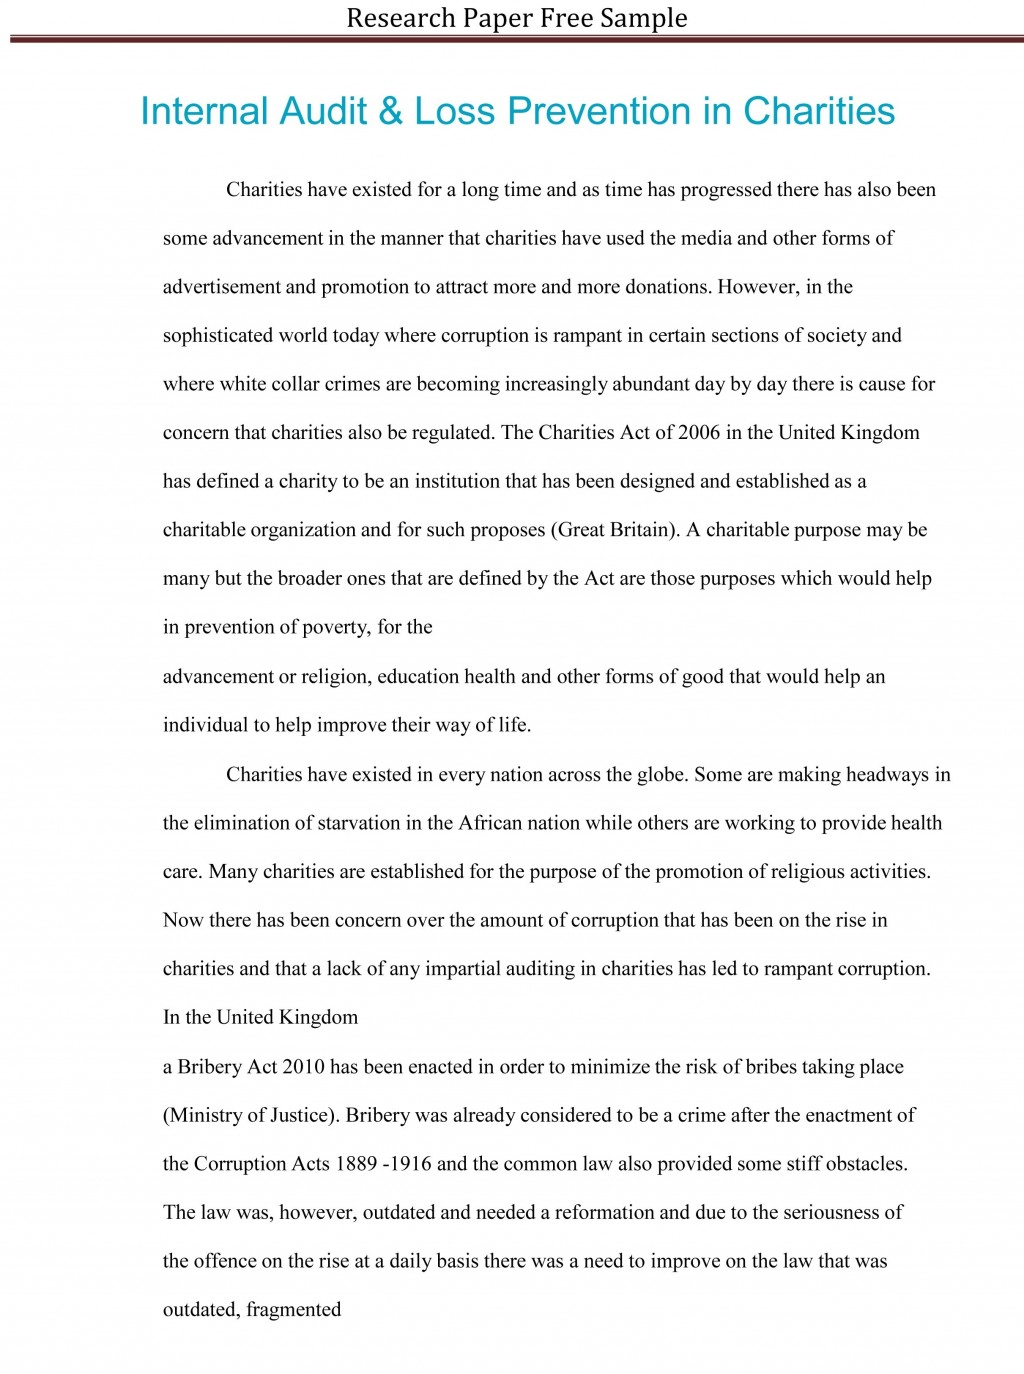 022 High School Research Paper Example Examples Of Essay Writings And Archaicawful Sample Dropout Large